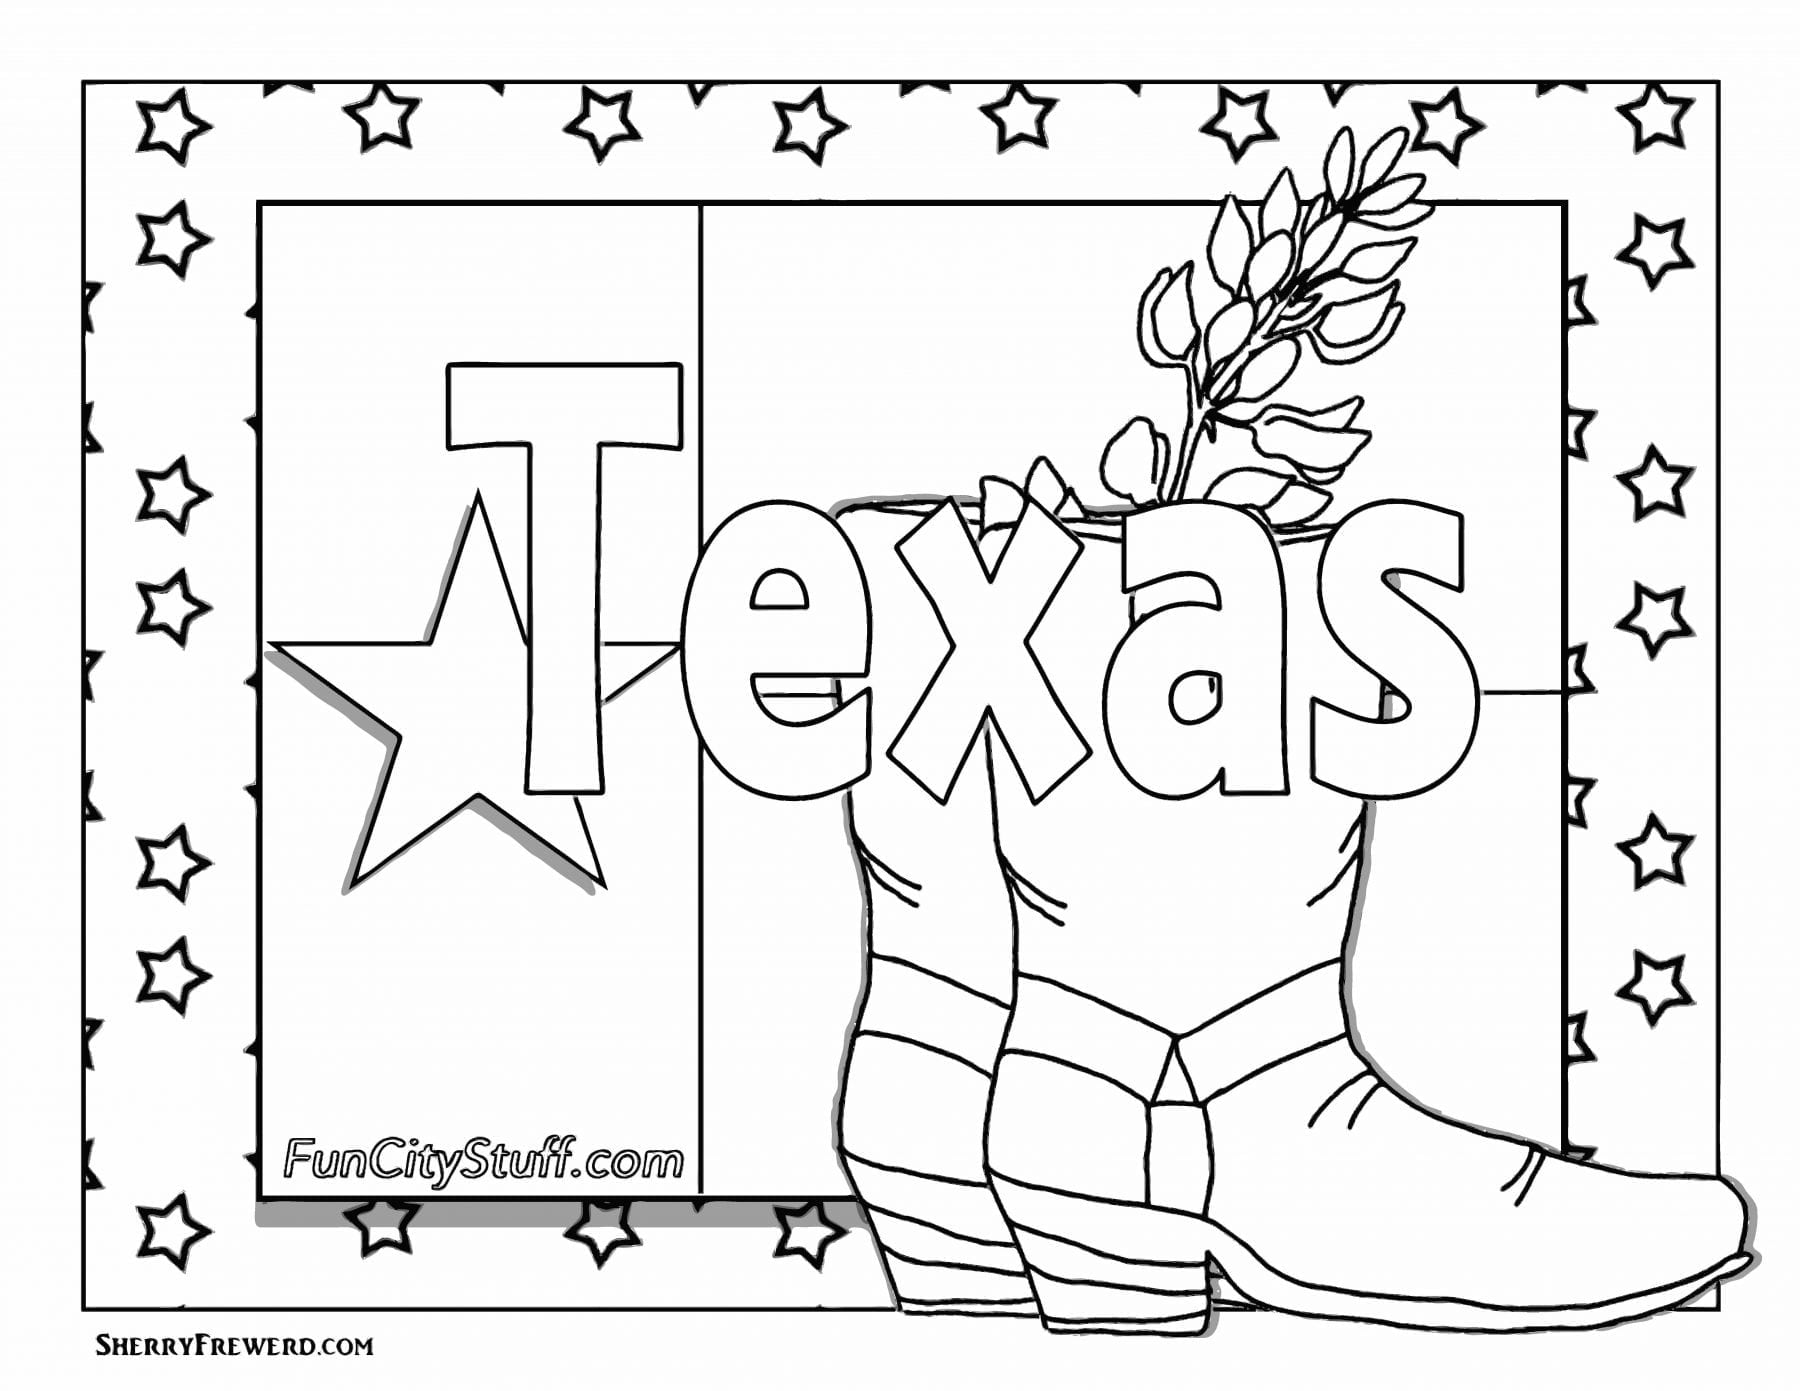 texas symbols coloring pages - photo#9